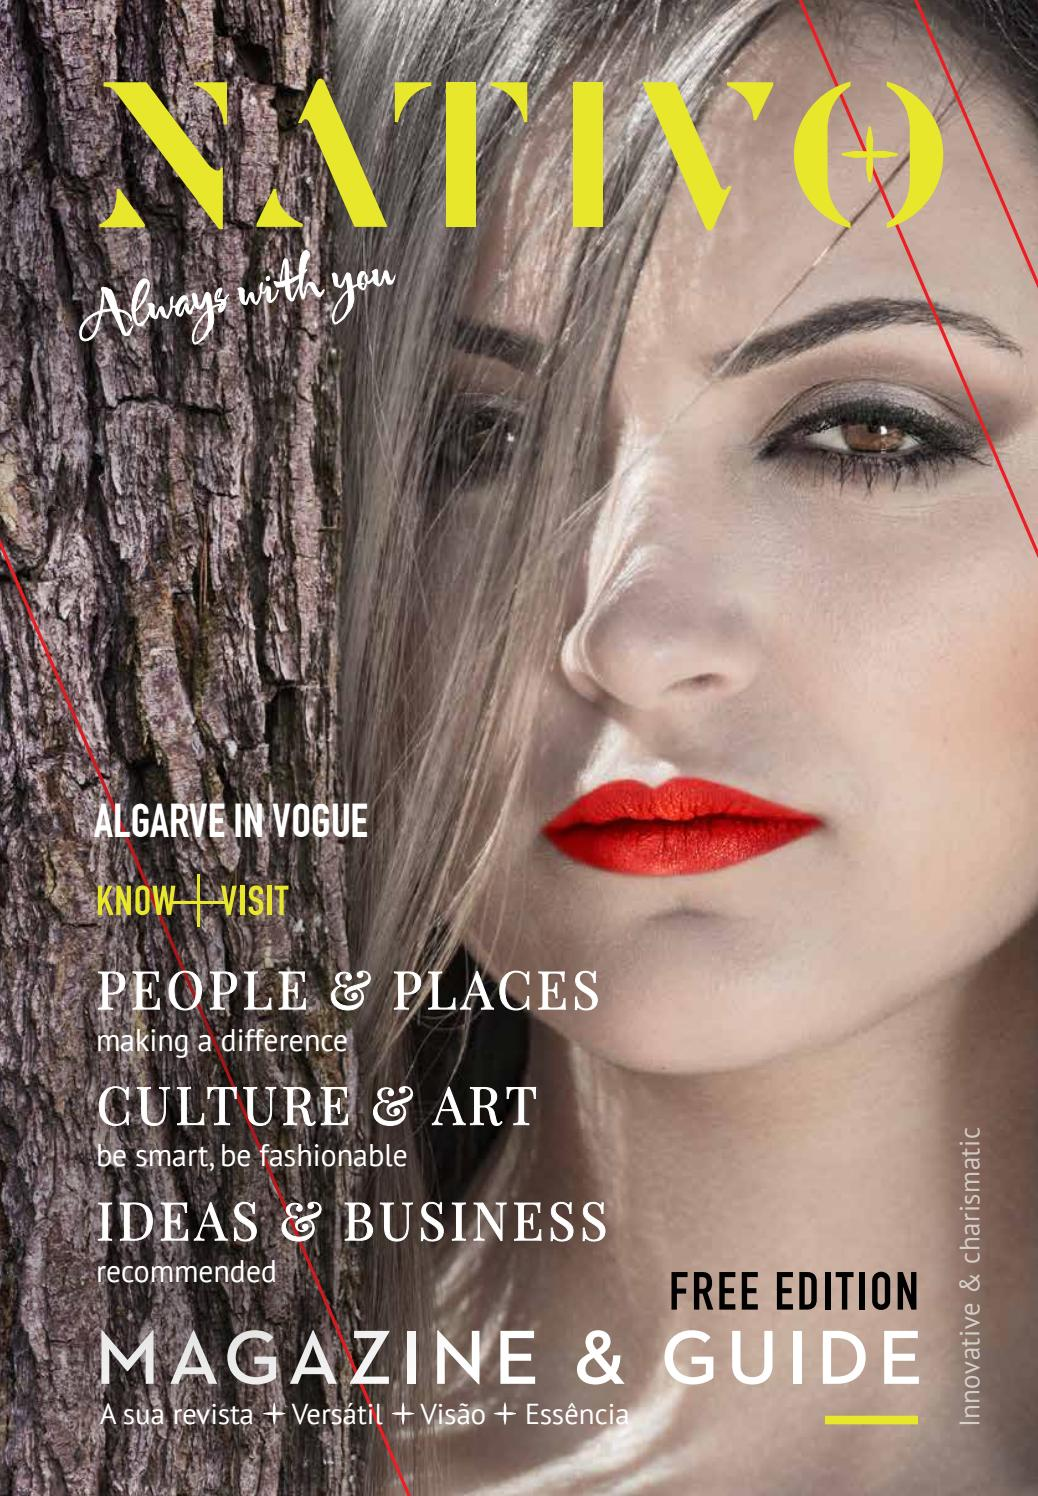 Nativo magazine guide algarve by nativo magazine guide issuu fandeluxe Choice Image